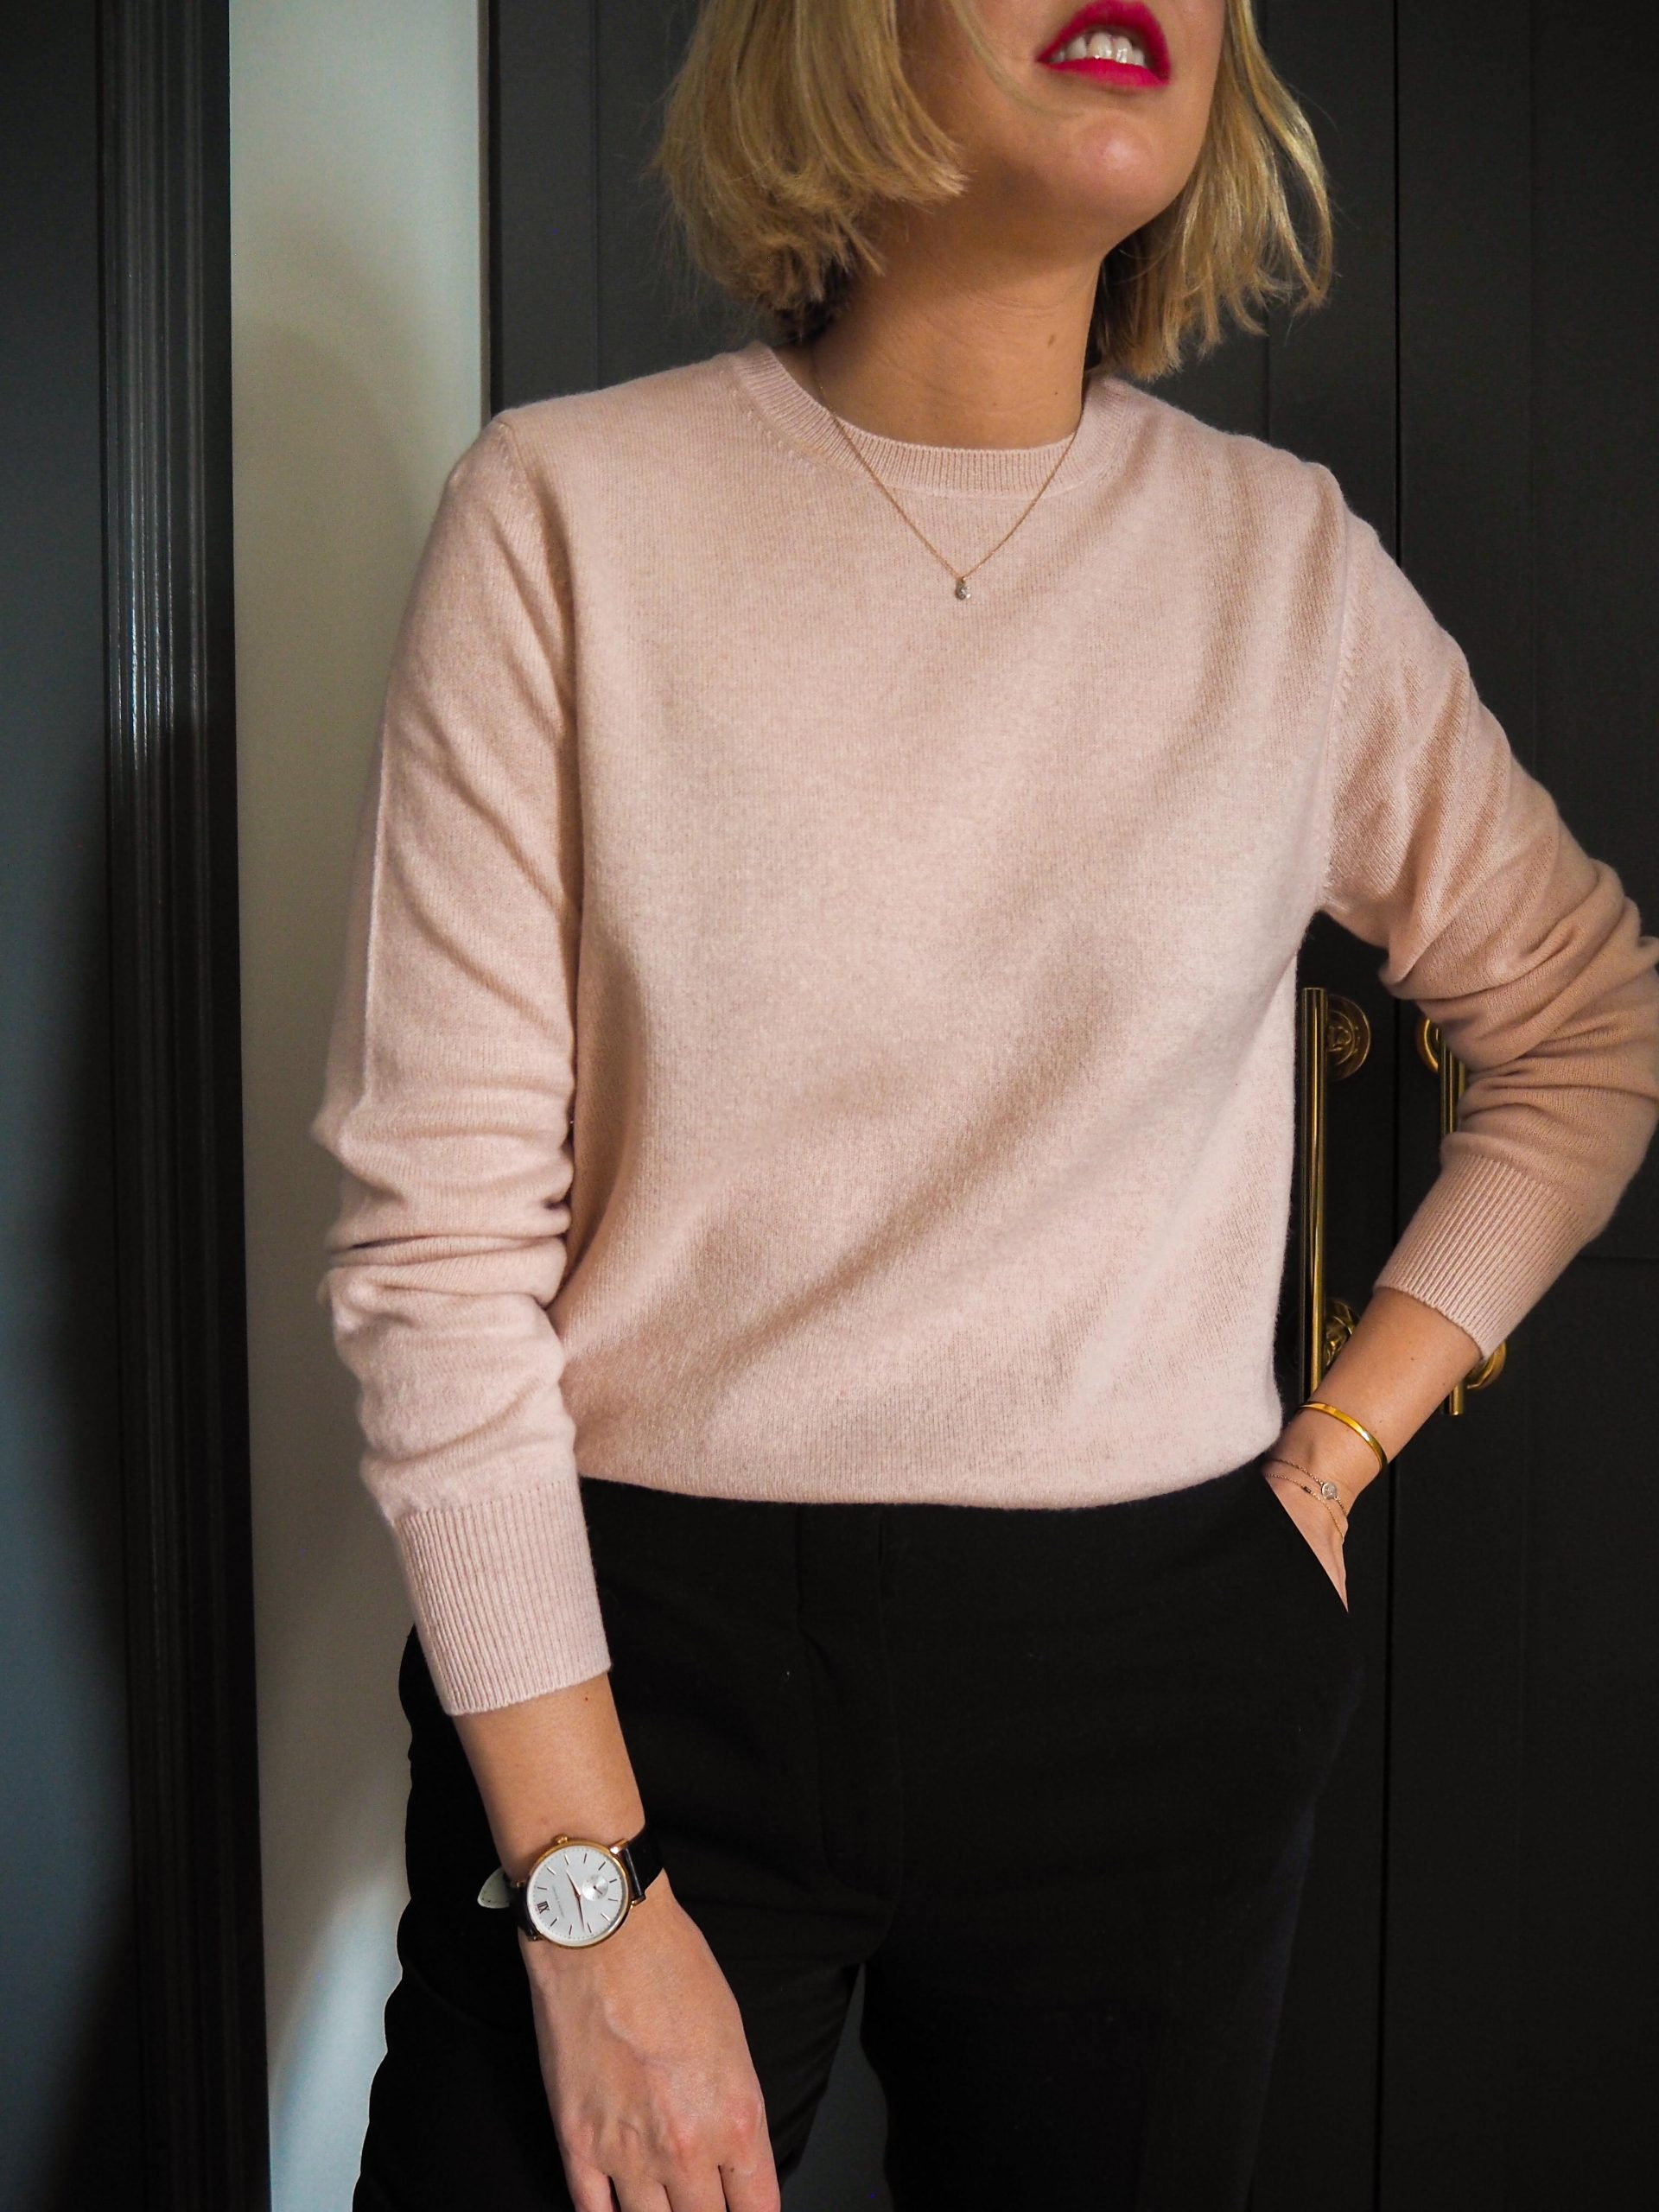 The High Street Cashmere Edit The Frugality